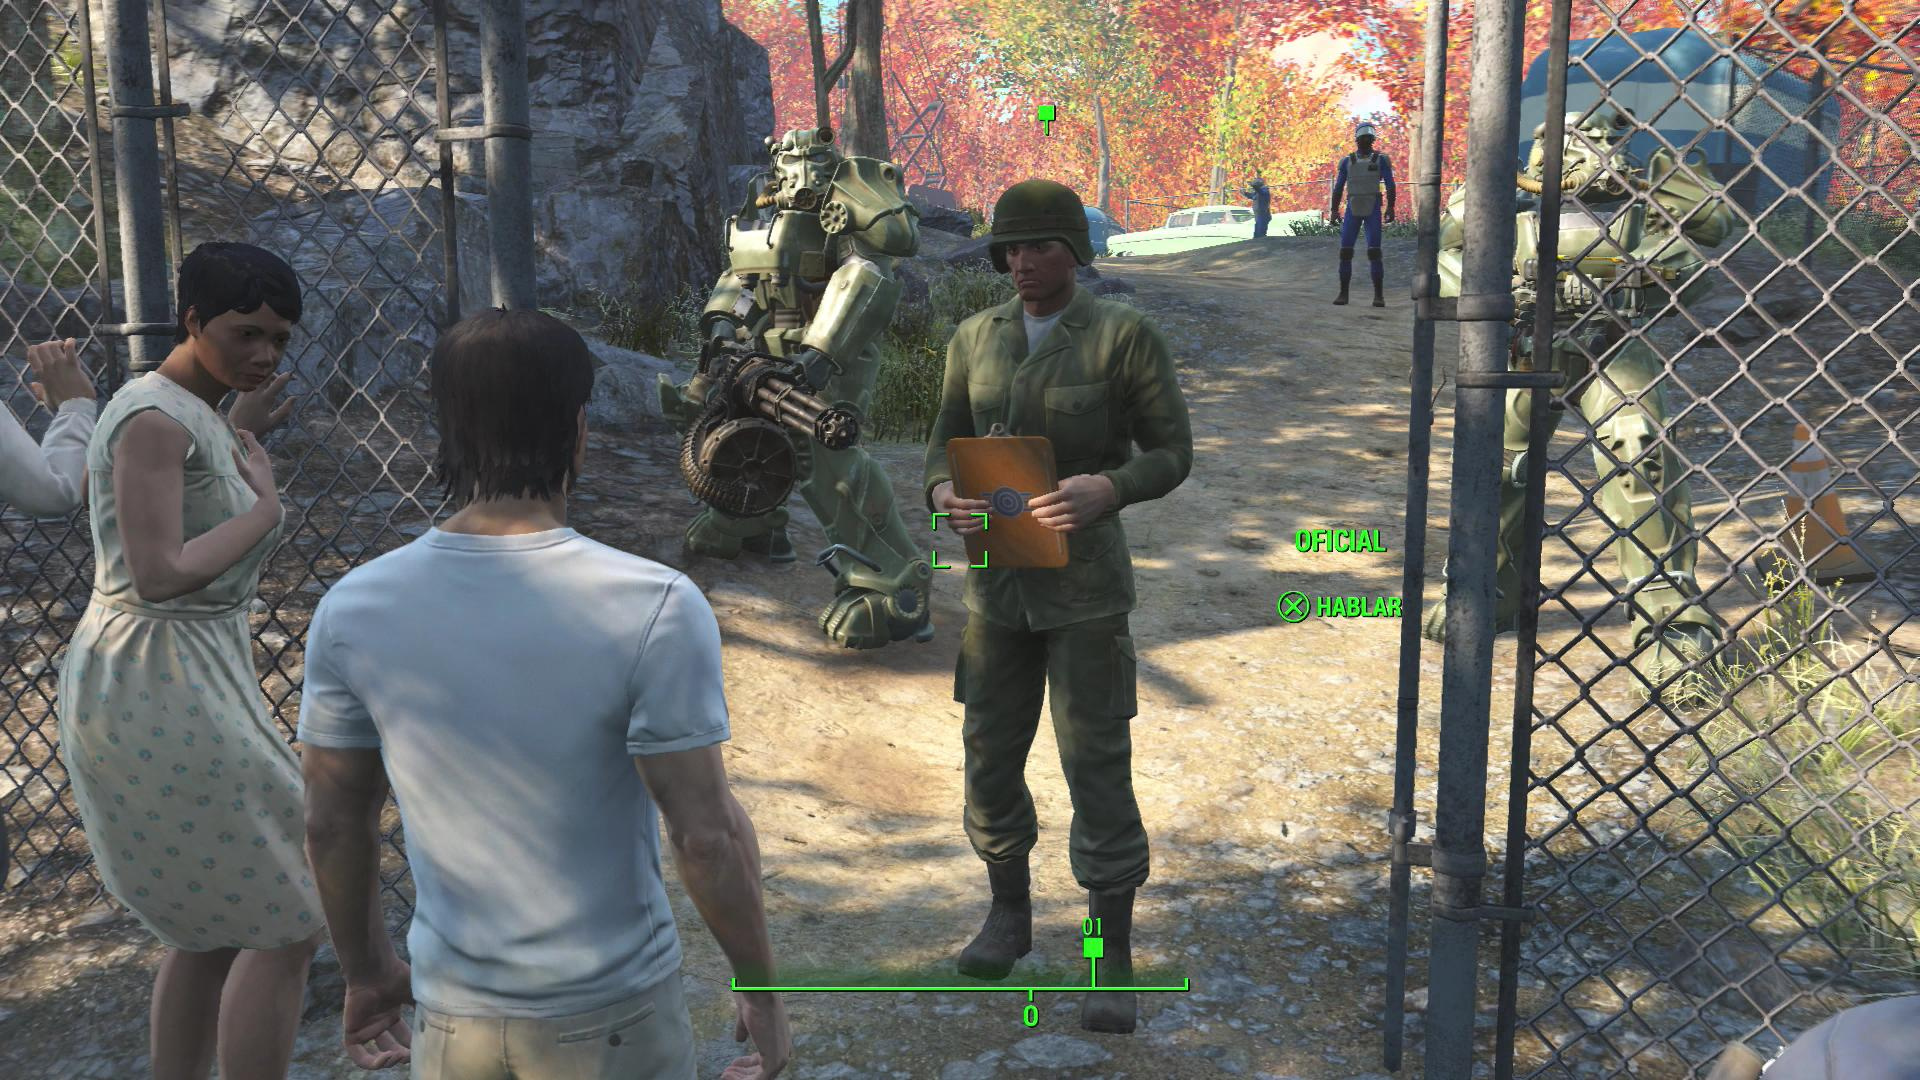 Bethesda Warns 'Fallout 4' Fans Against Sharing Unapproved Images Following